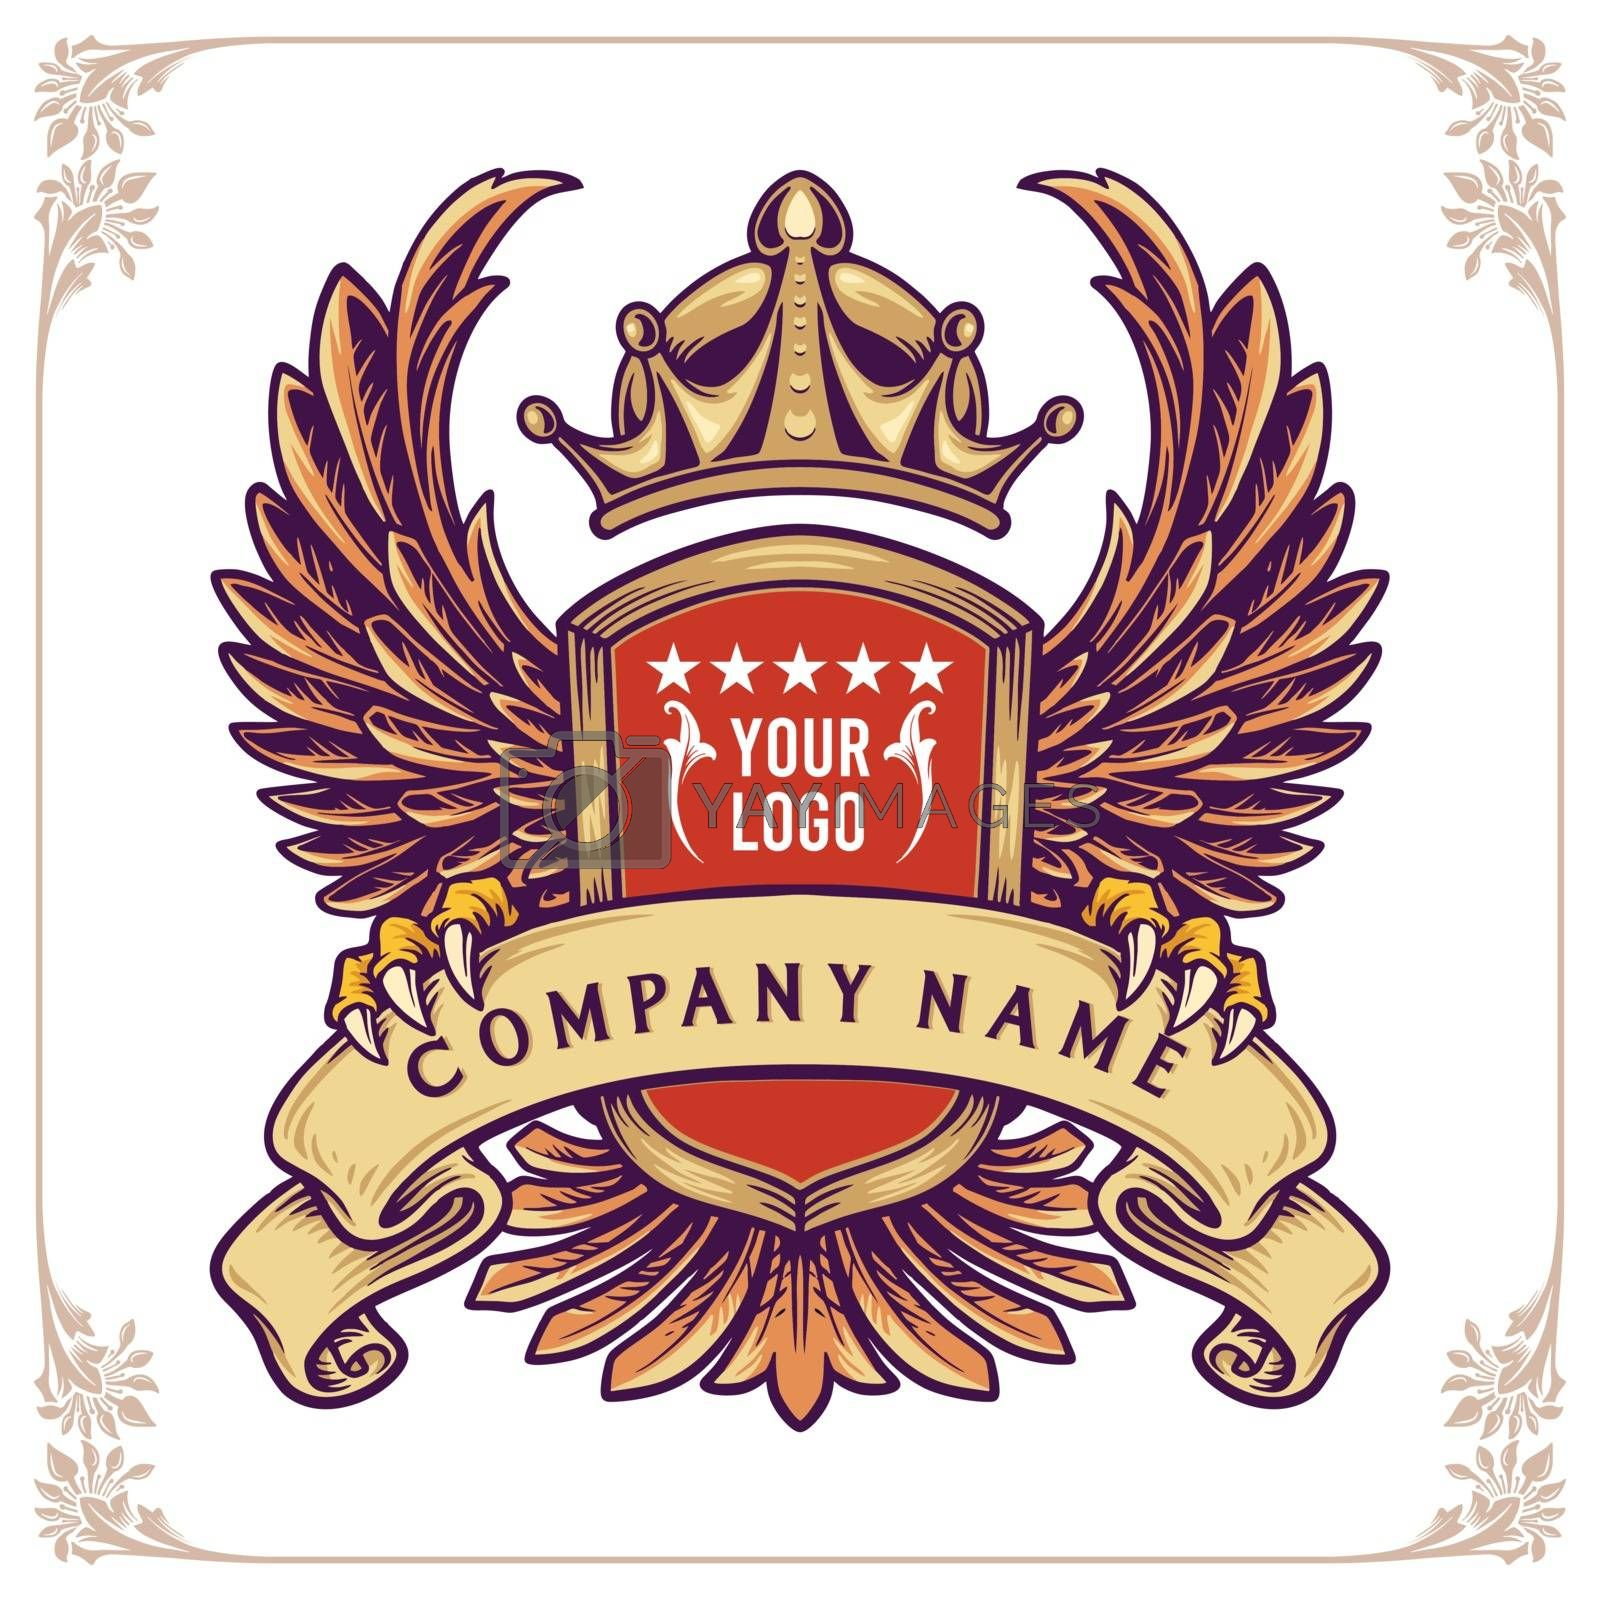 emblems with wings and crown and ribbon. Stylish and brutal badgess for Business